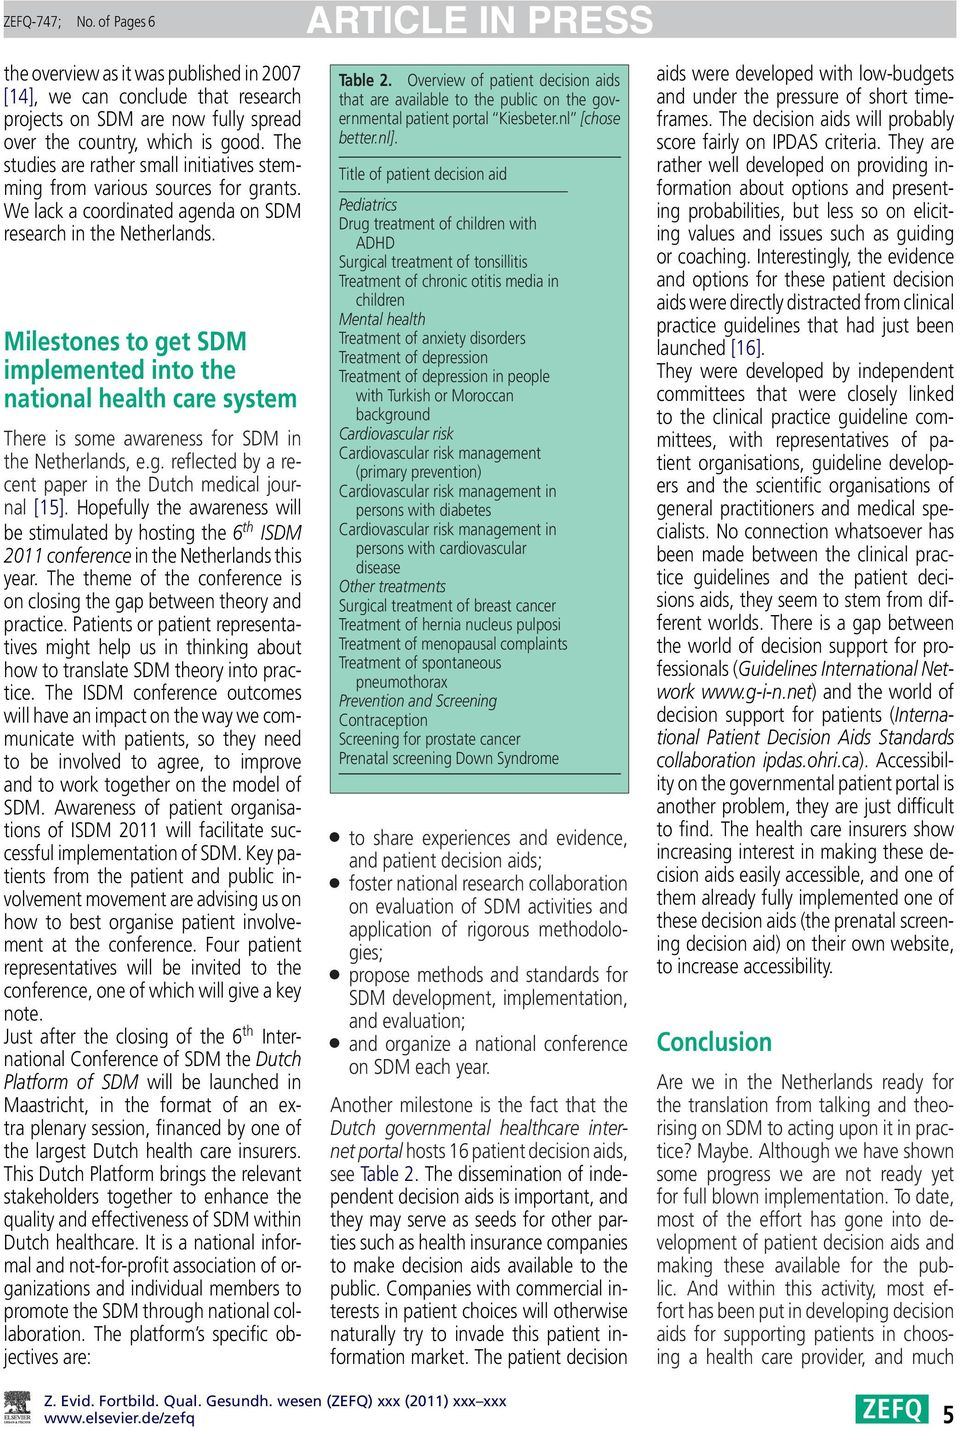 Milestones to get SDM implemented into the national health care system There is some awareness for SDM in the Netherlands, e.g. reflected by a recent paper in the Dutch medical journal [15].